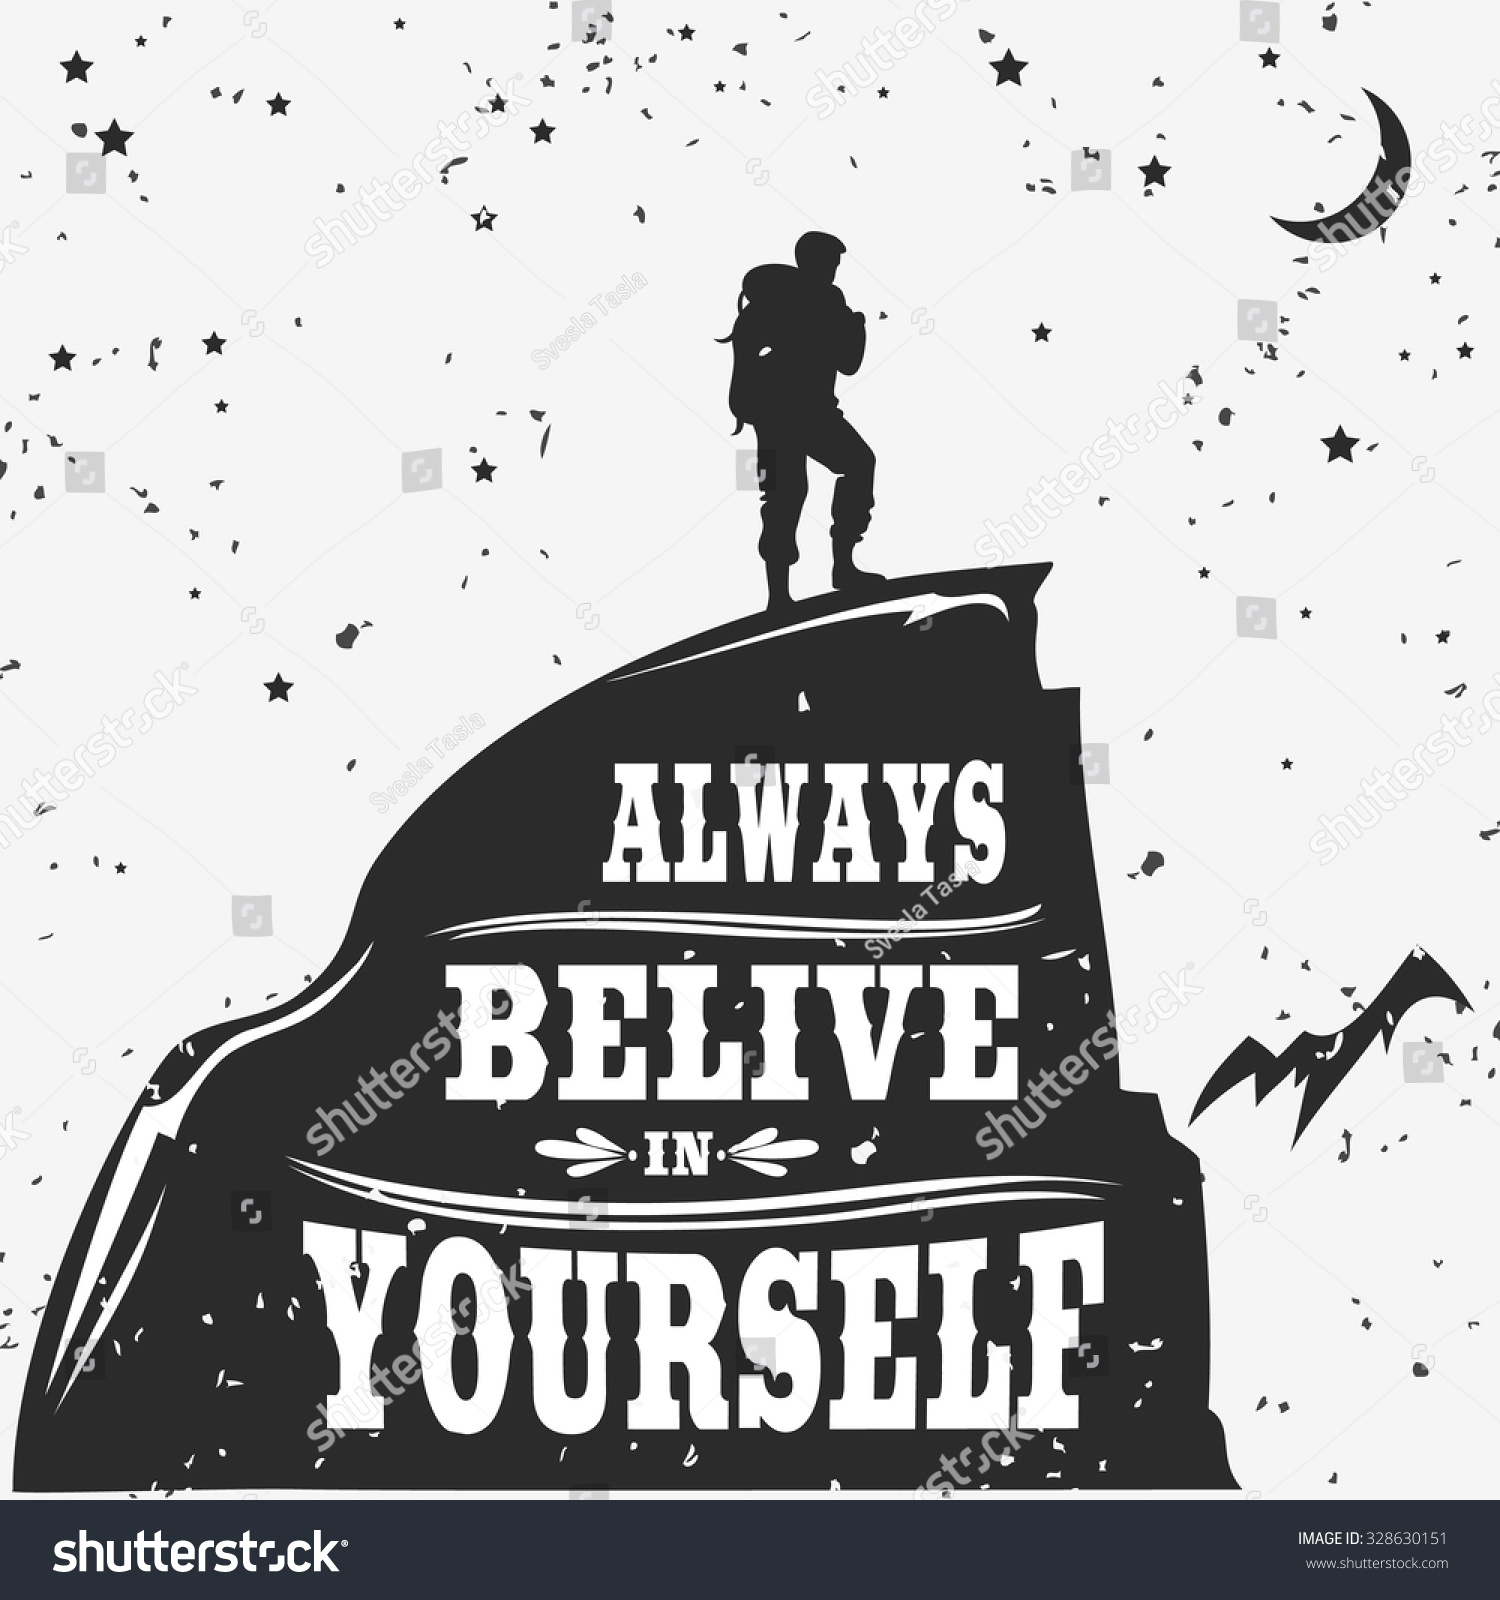 Motivational And Inspirational Typography Poster With Quote. Always Belive In Yourself. Climbing The Mountains, Achieve Goal, Success. Man On Top ...